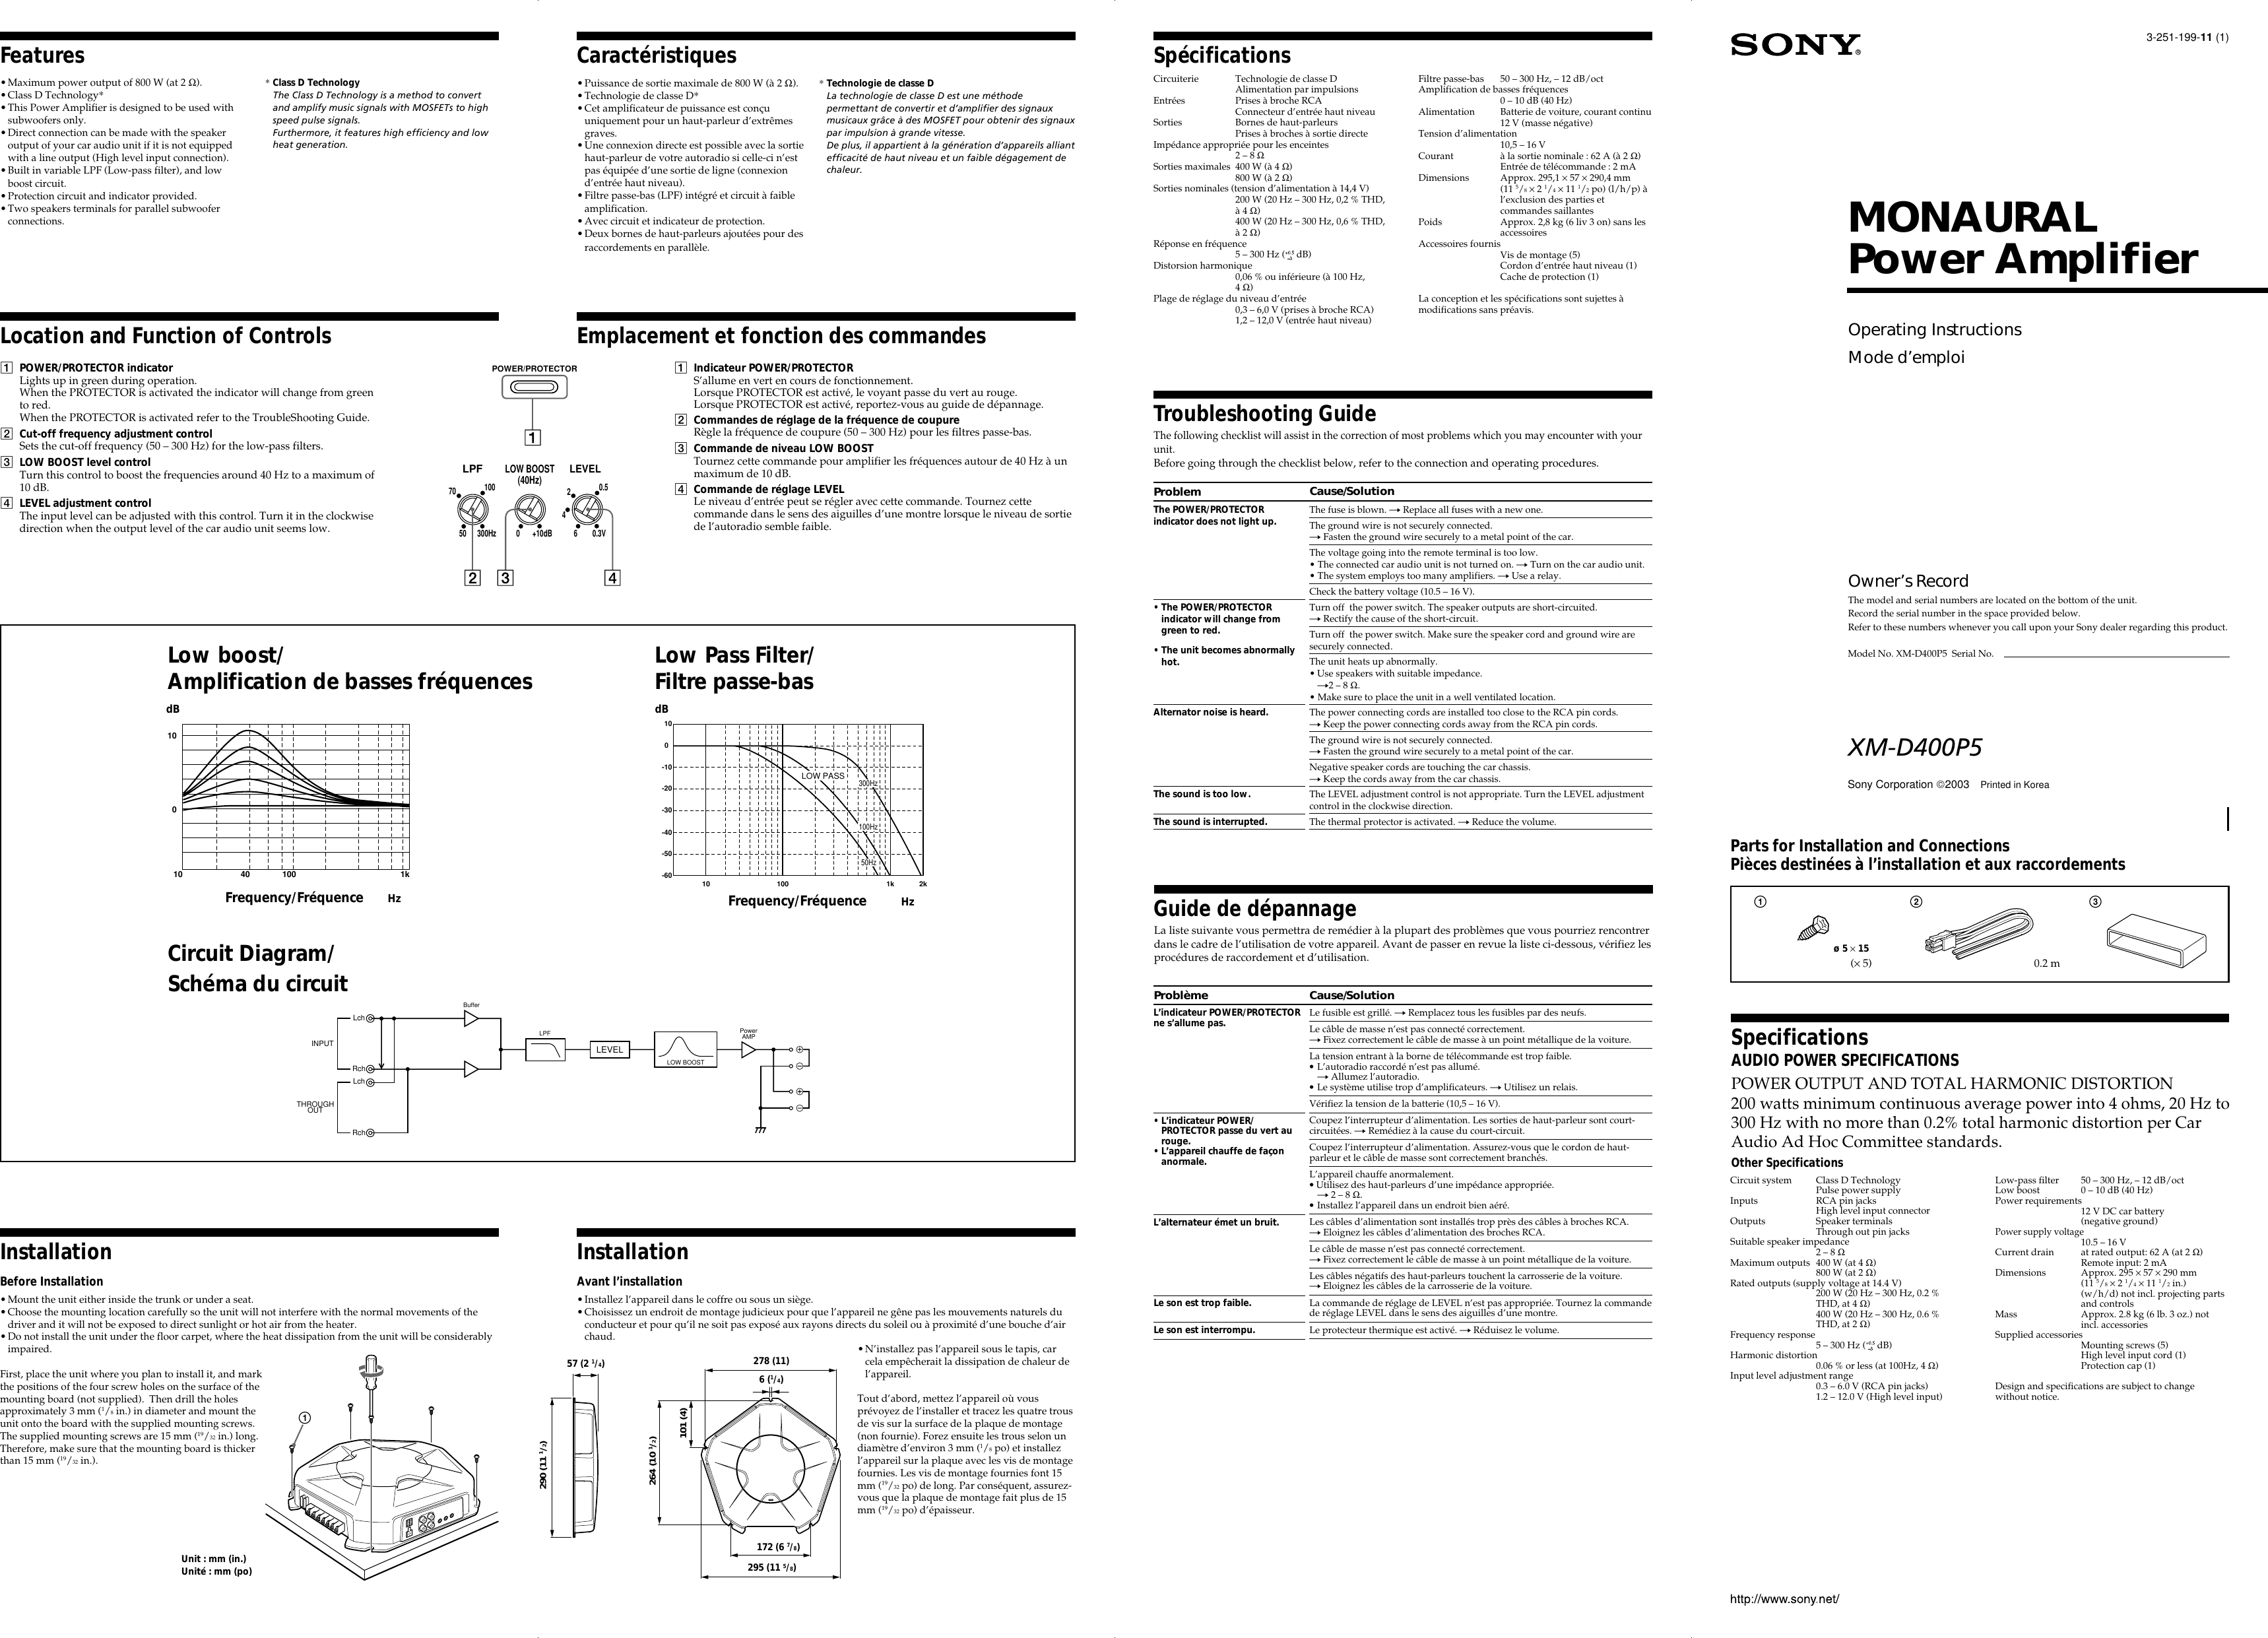 Sony Xplod Xm D400p5 Users Manual